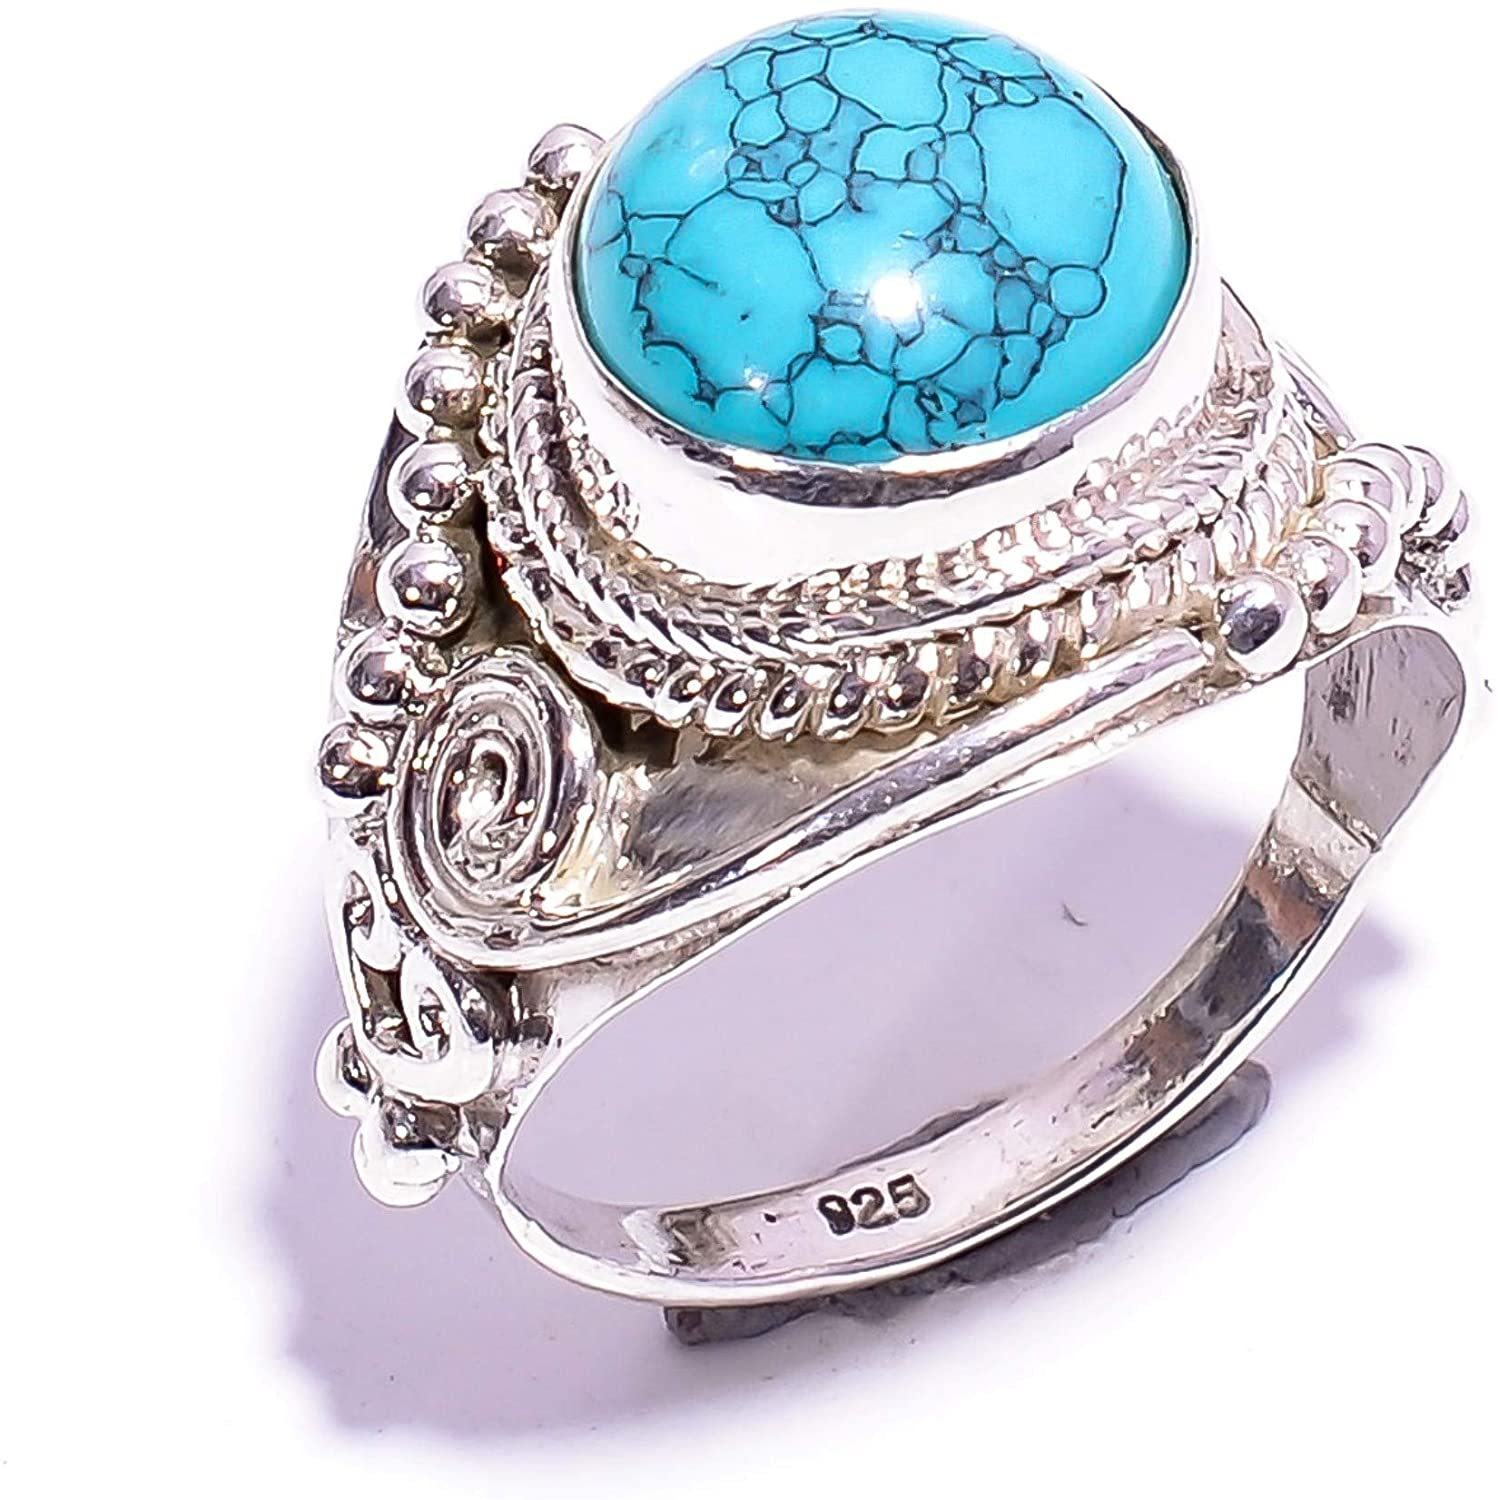 Mughal gems & jewellery 925 Sterling Silver Ring Natural Tibetan Turquoise Gemstone Fine Jewelry Ring for Women & Girls Size 7 U.S (ZR-907